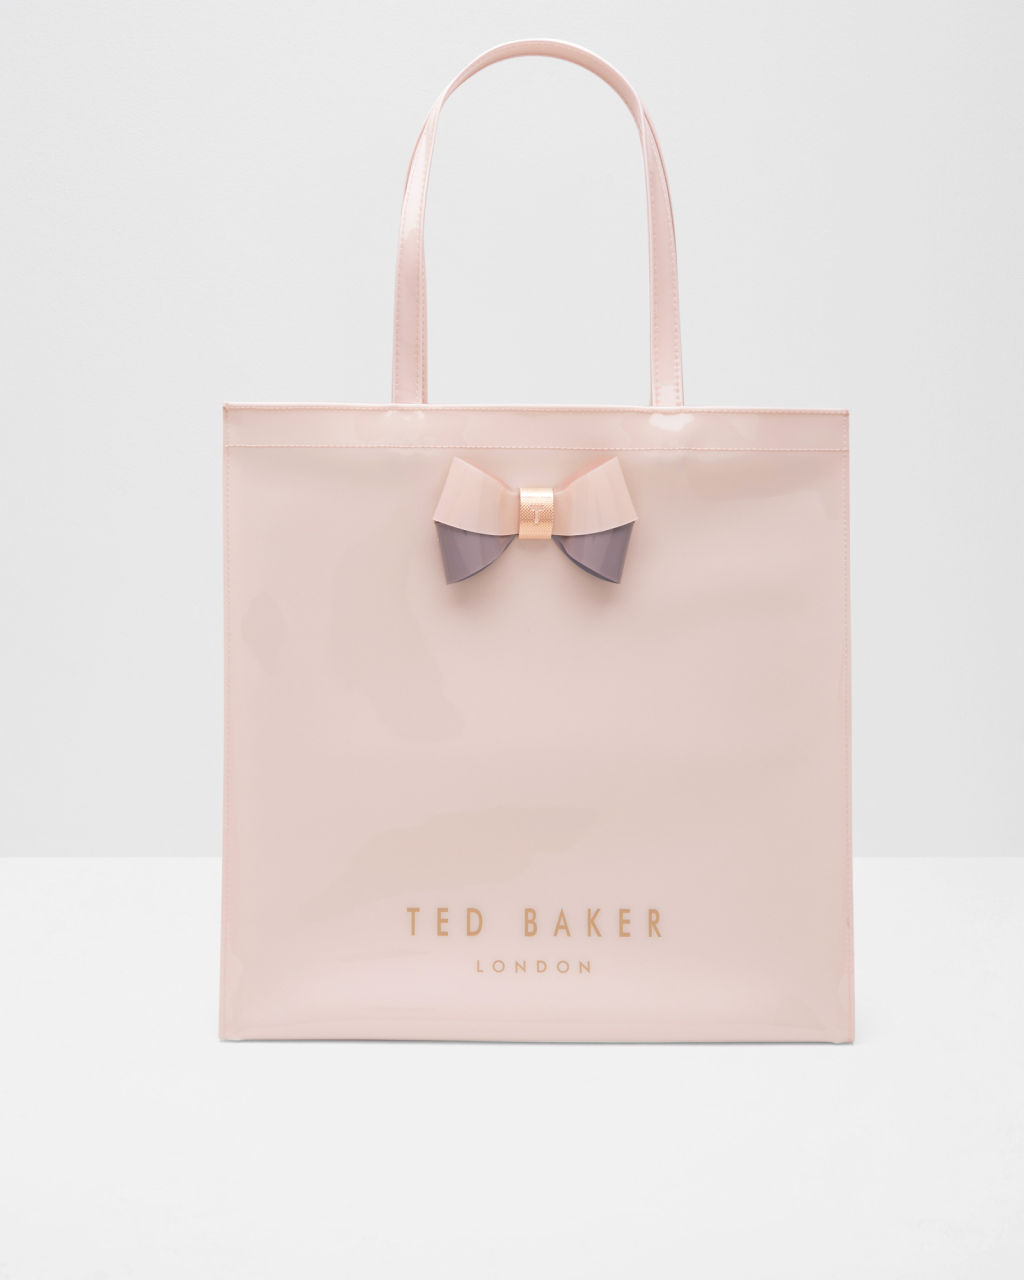 Ted Baker 折上折優惠:Large Shopper Bag只係HK$270!